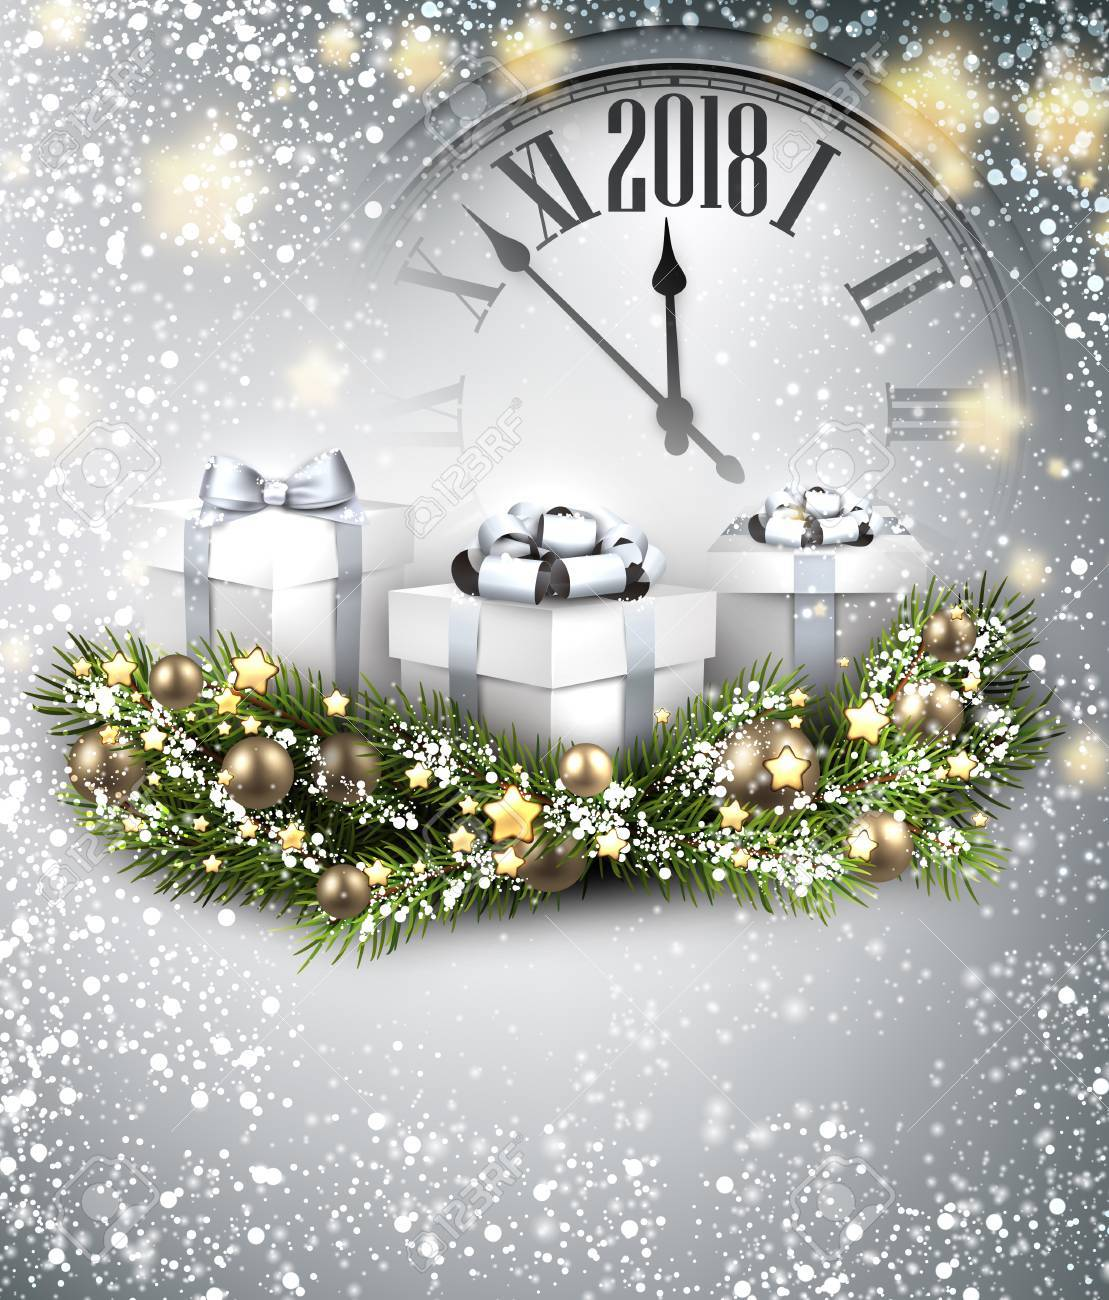 2018 New Year Background With Clock, Gifts And Snow. Vector ...